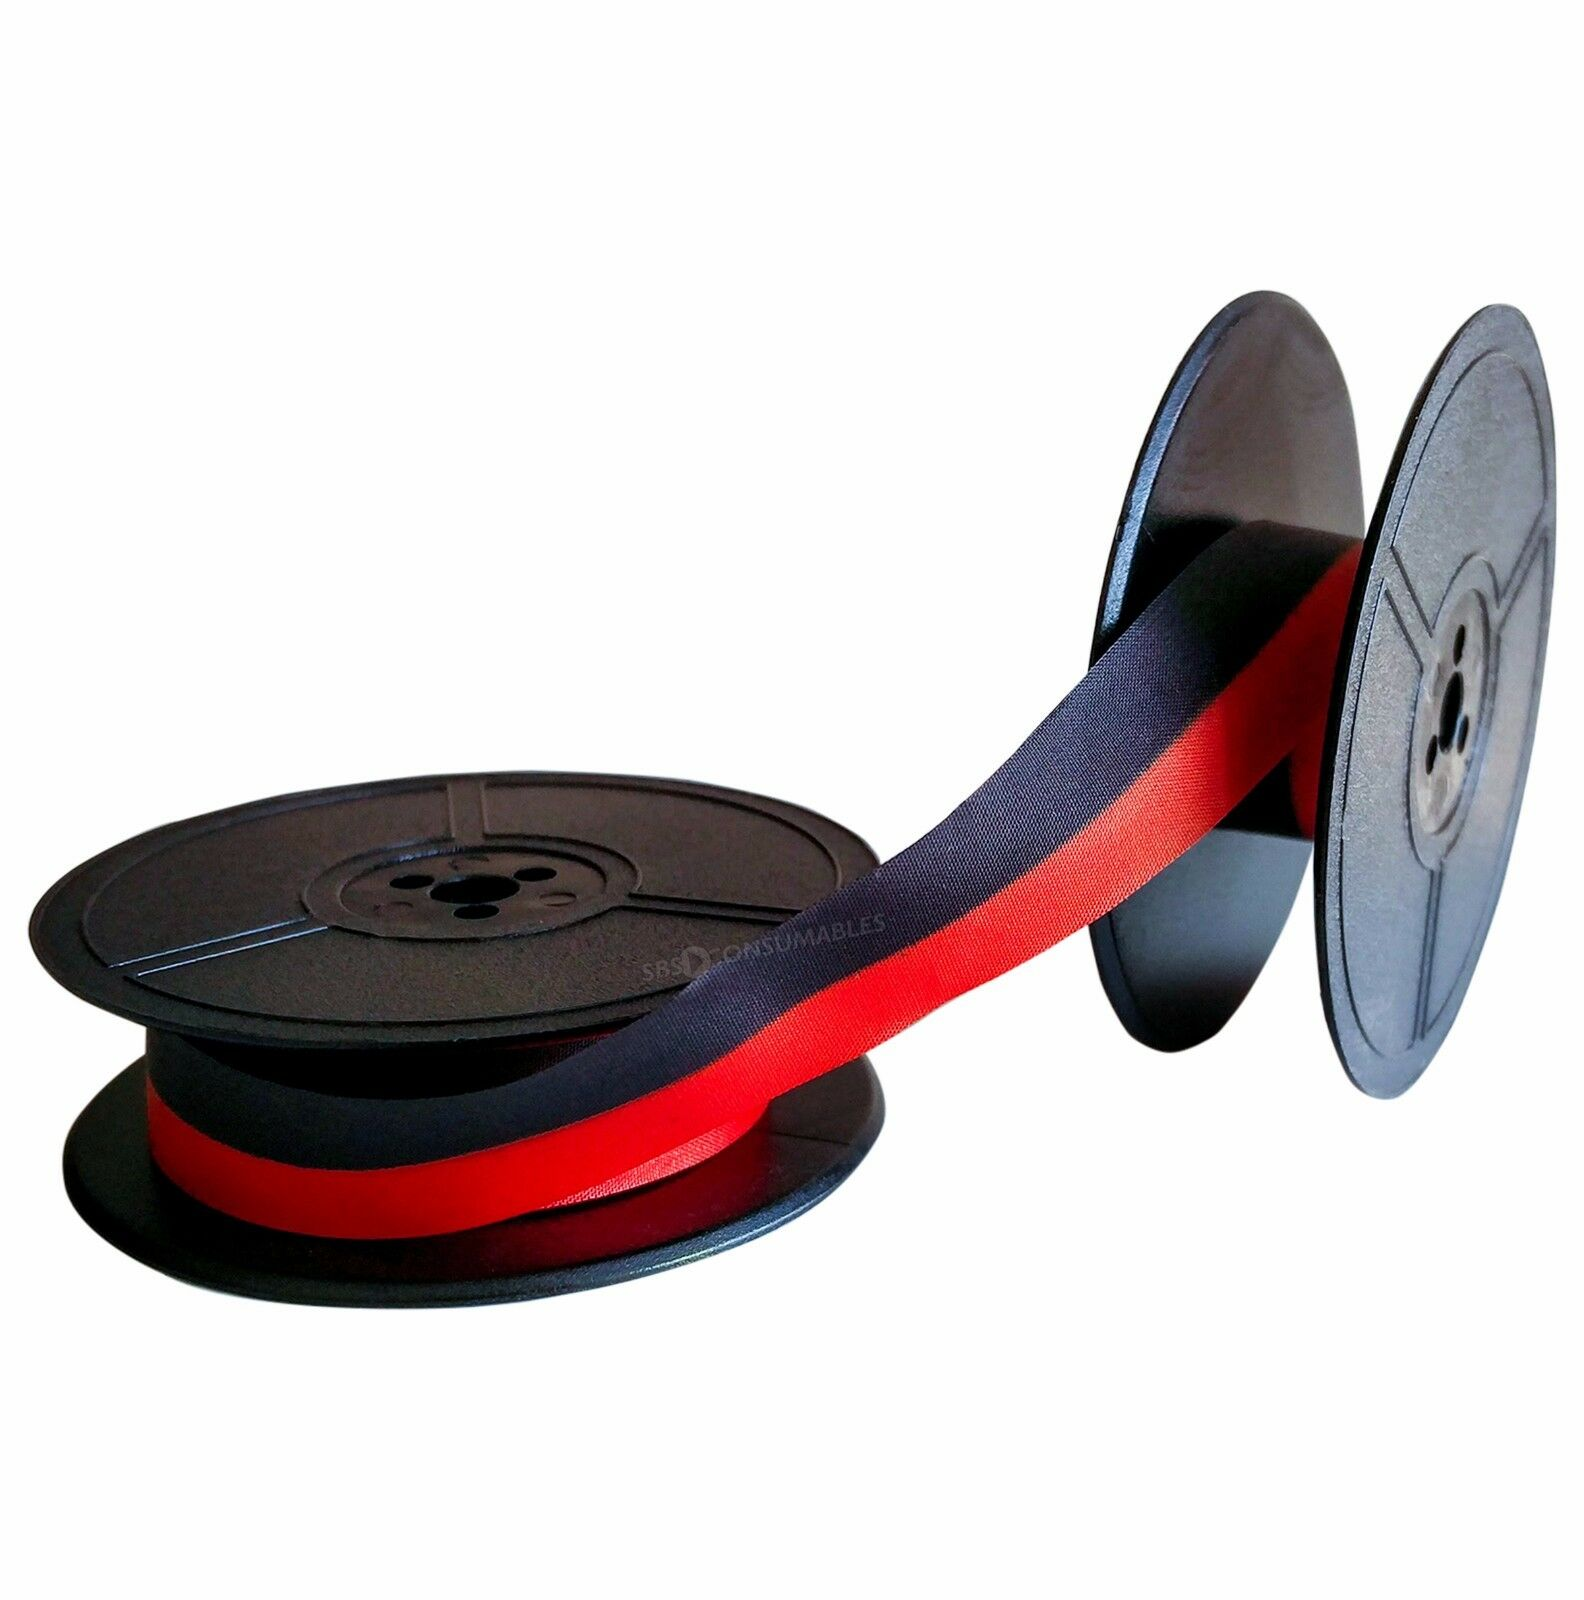 TWIN SPOOL 1001FN-GROUP 1-DIN2103 *RED//BLACK* HIGH QUALITY  TYPEWRITER RIBBON